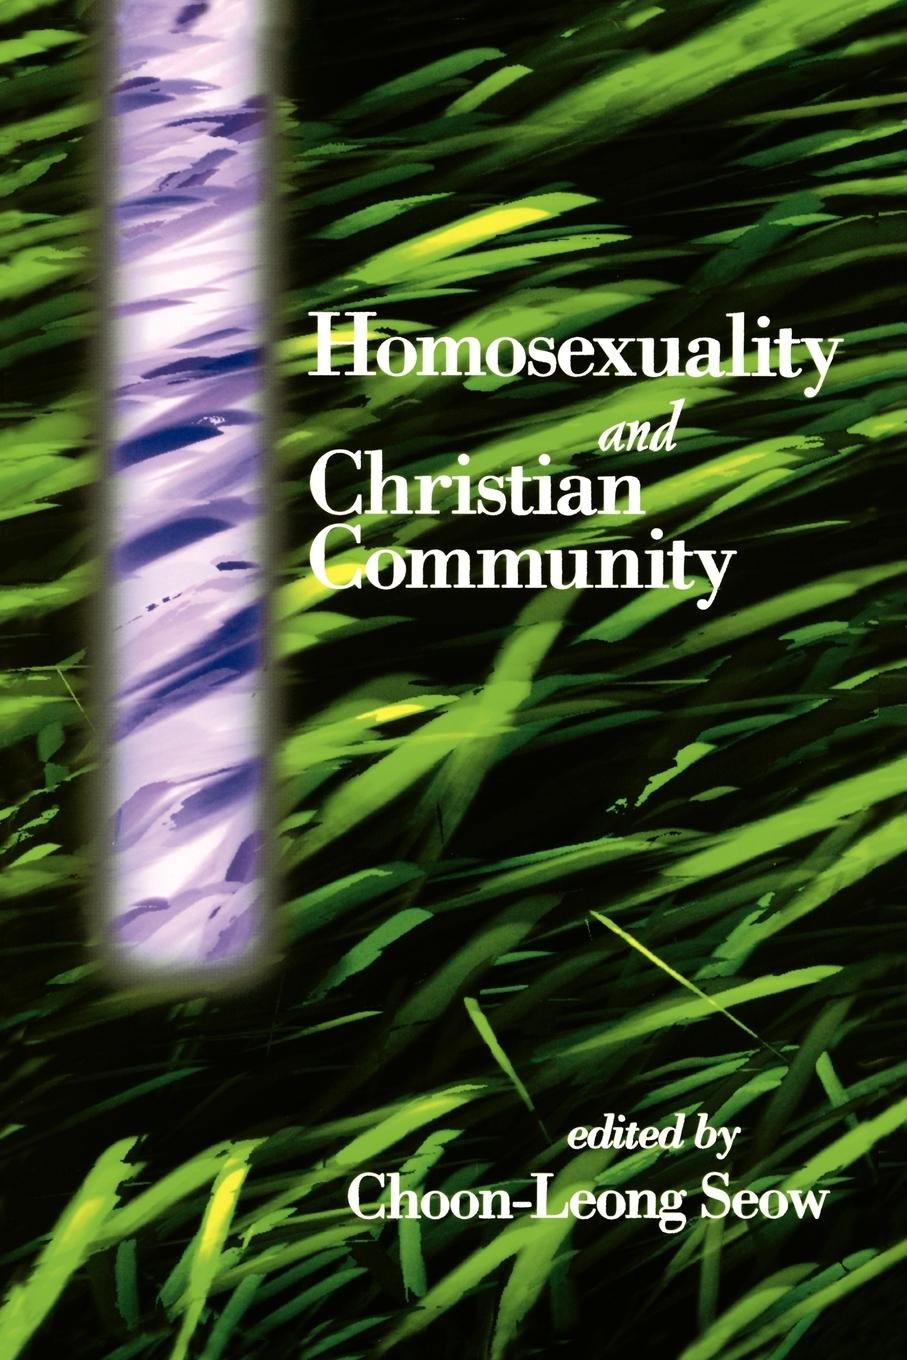 Americas view on homosexuality in christianity